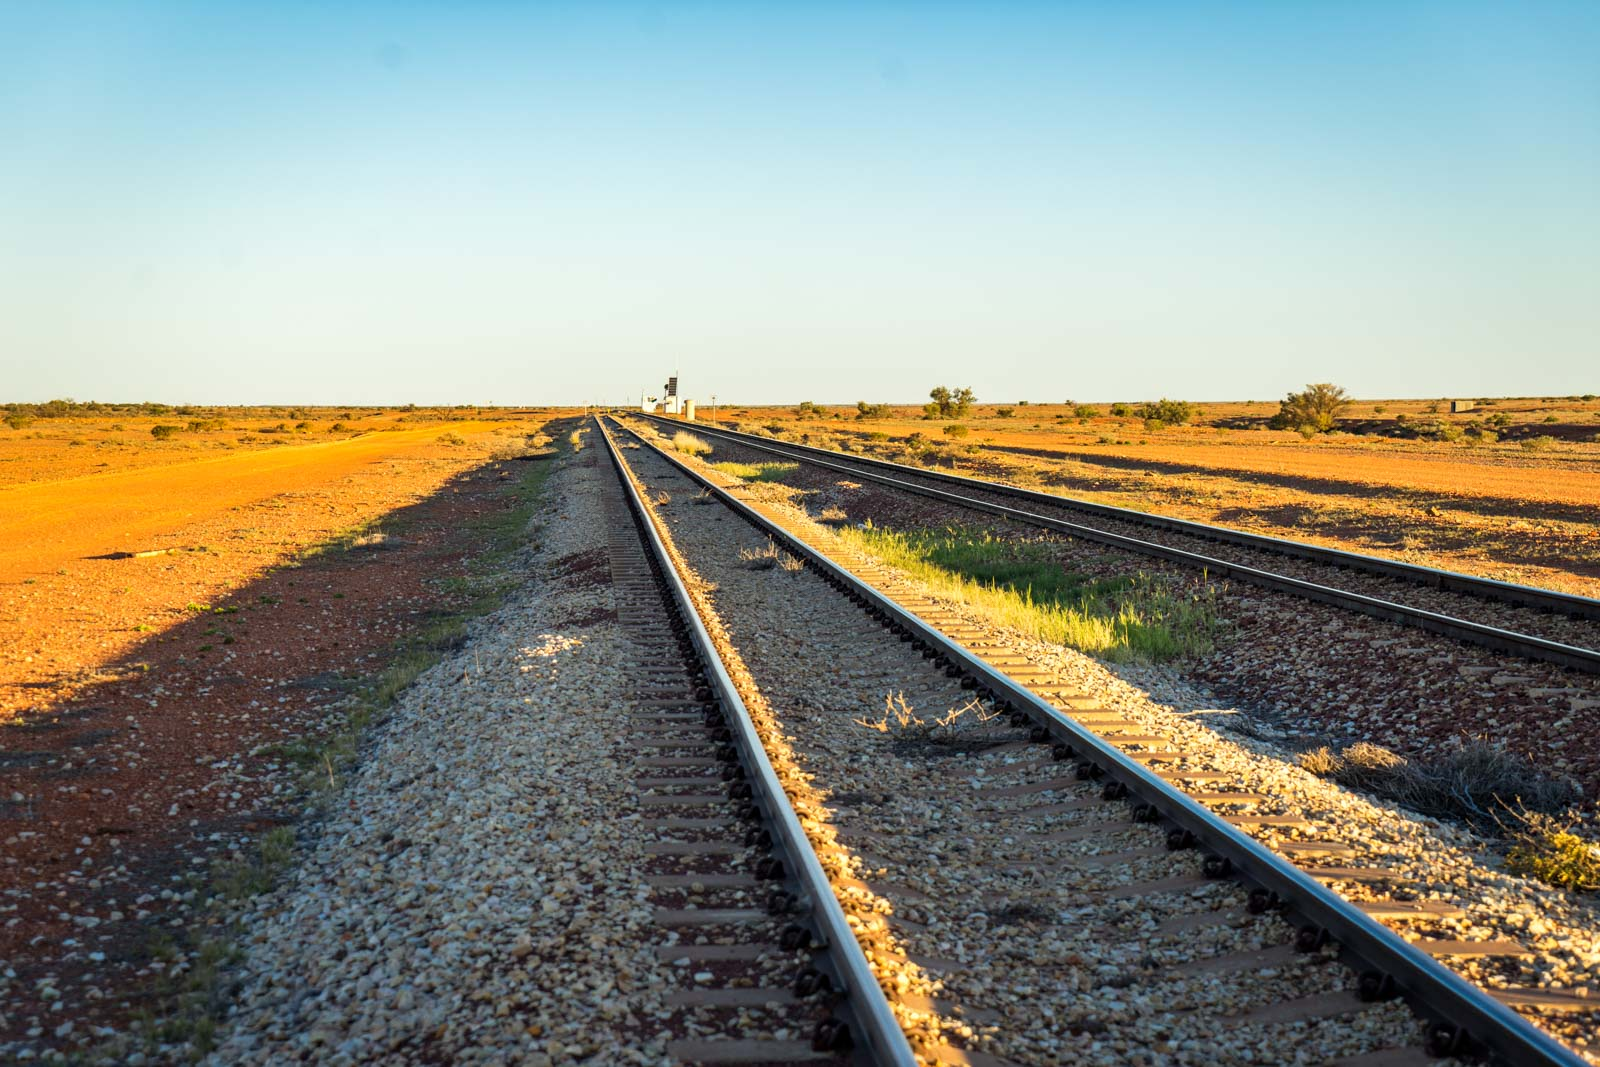 The Ghan Expedition, Australia